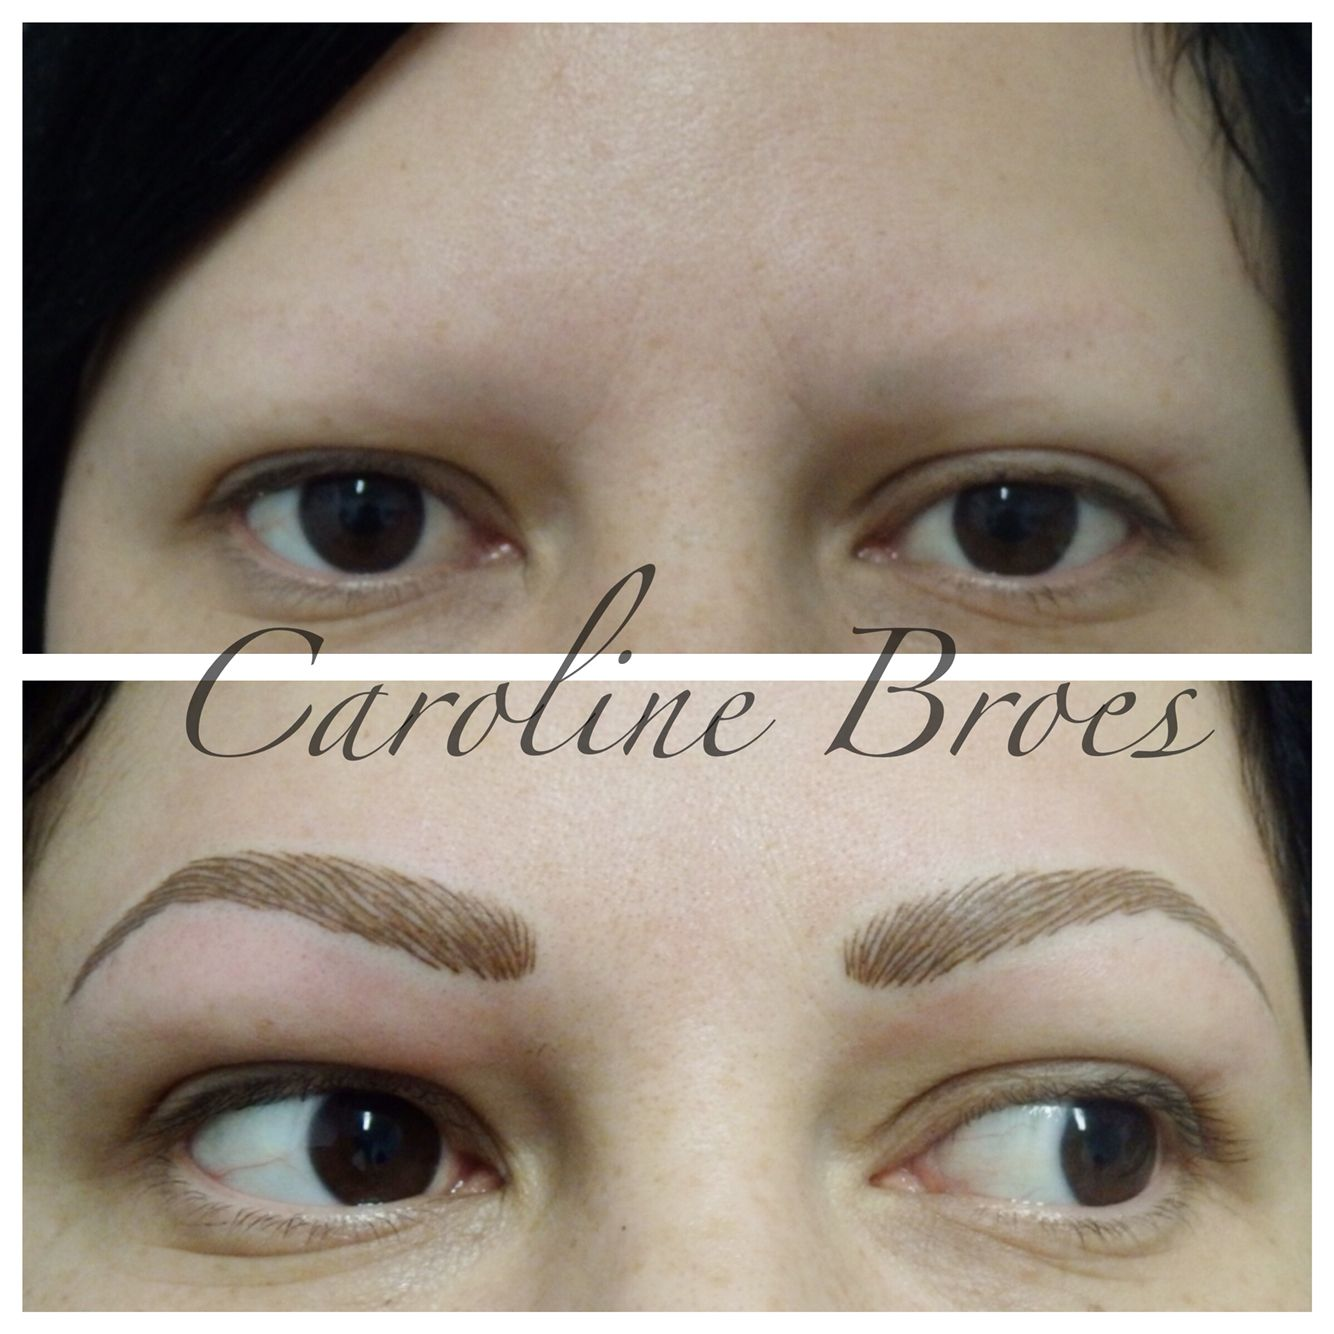 Hairstroke Brows Beautyink Perth Australia Mywork Beautyink Pure Products Australia Permanent Makeup